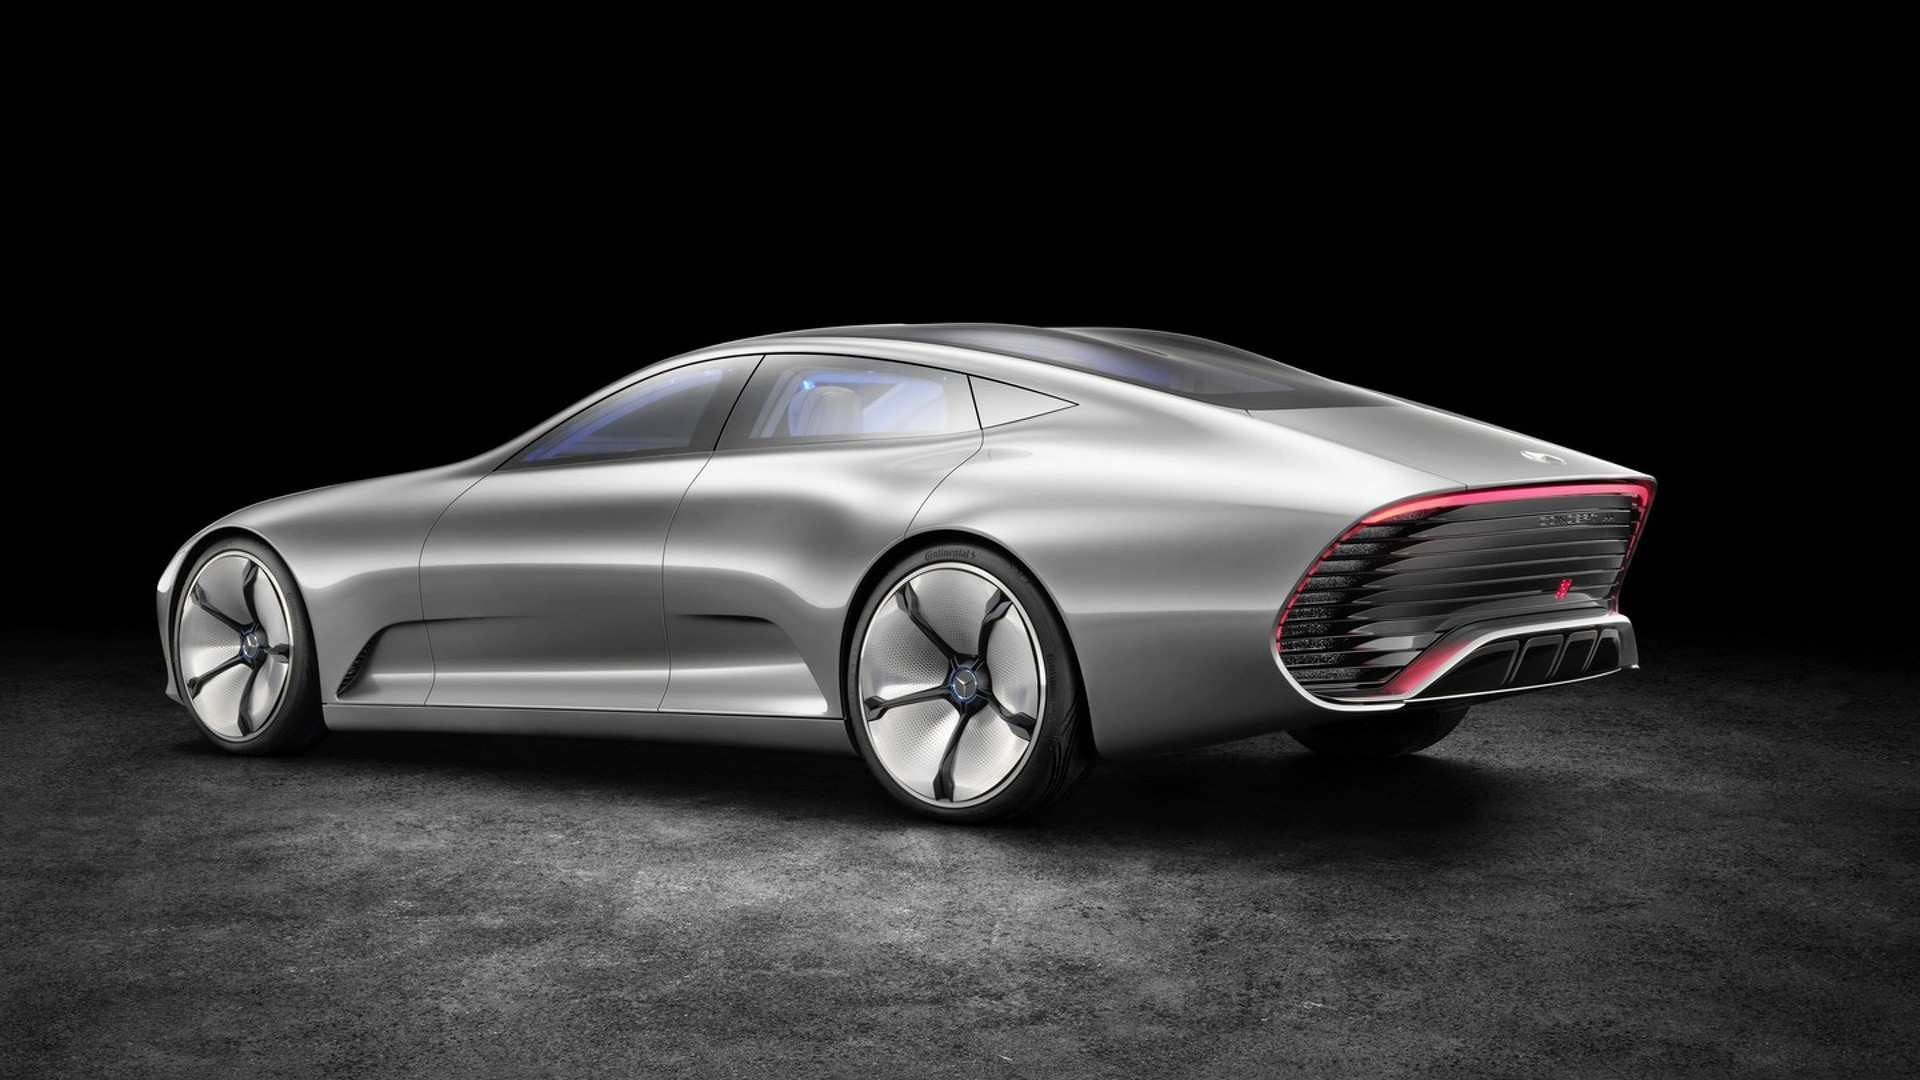 68 All New Mercedes New Conceptlen 2020 Style by Mercedes New Conceptlen 2020